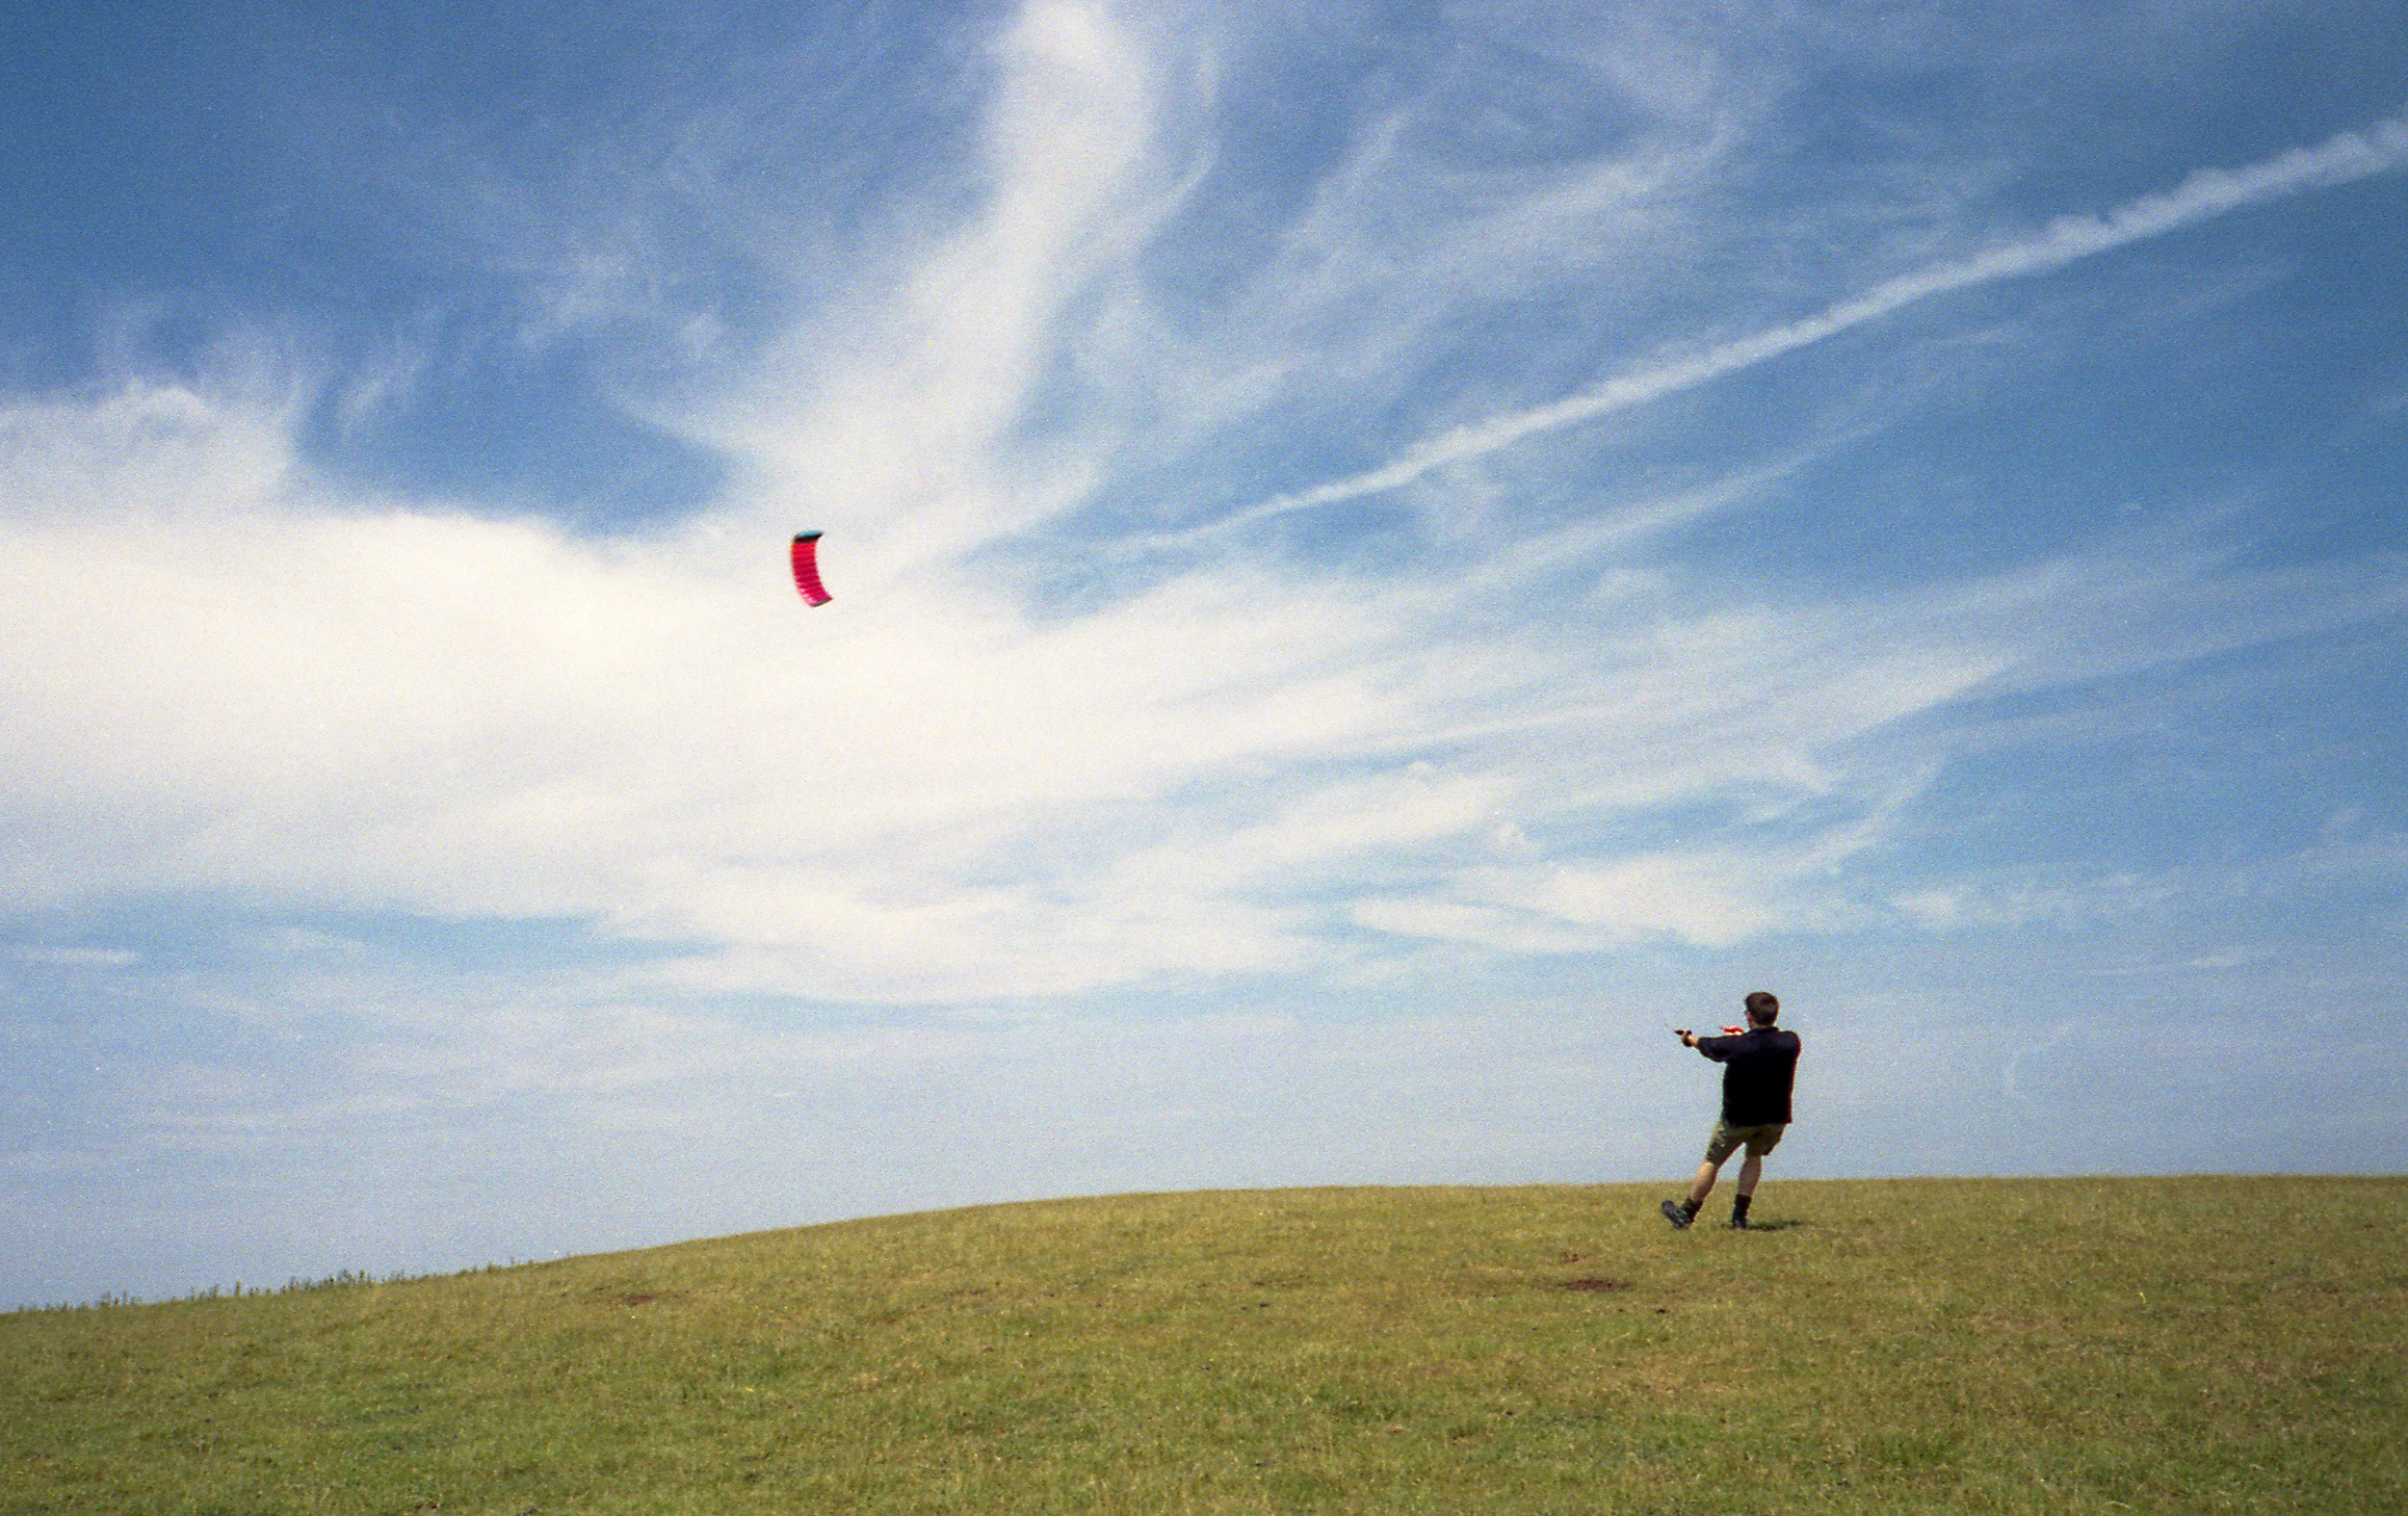 More kite action